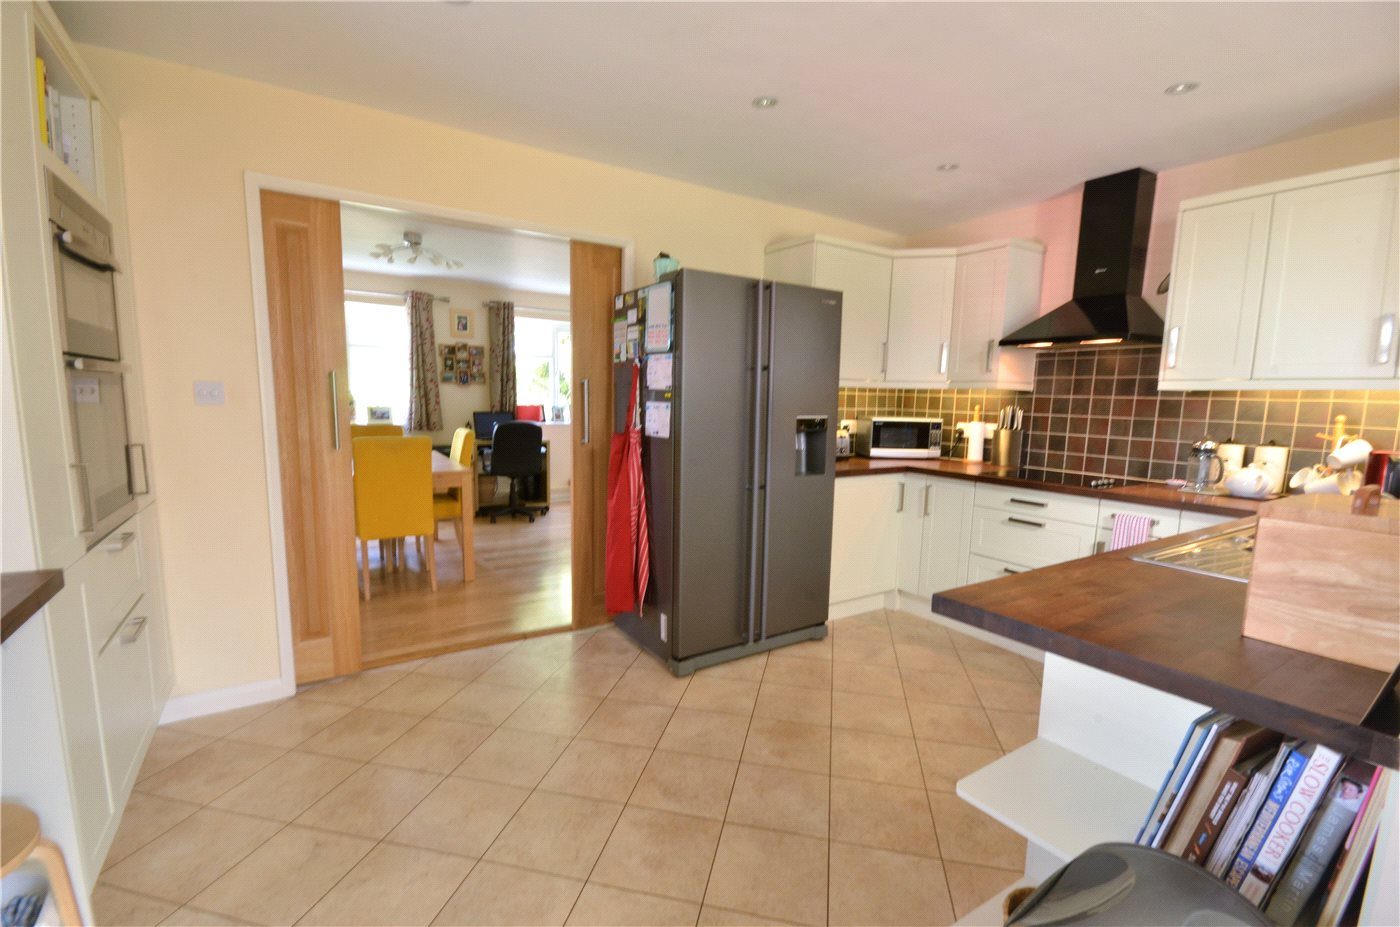 3 Bedrooms End Of Terrace House for sale in Goldfinch Way, Borehamwood, Hertfordshire, WD6